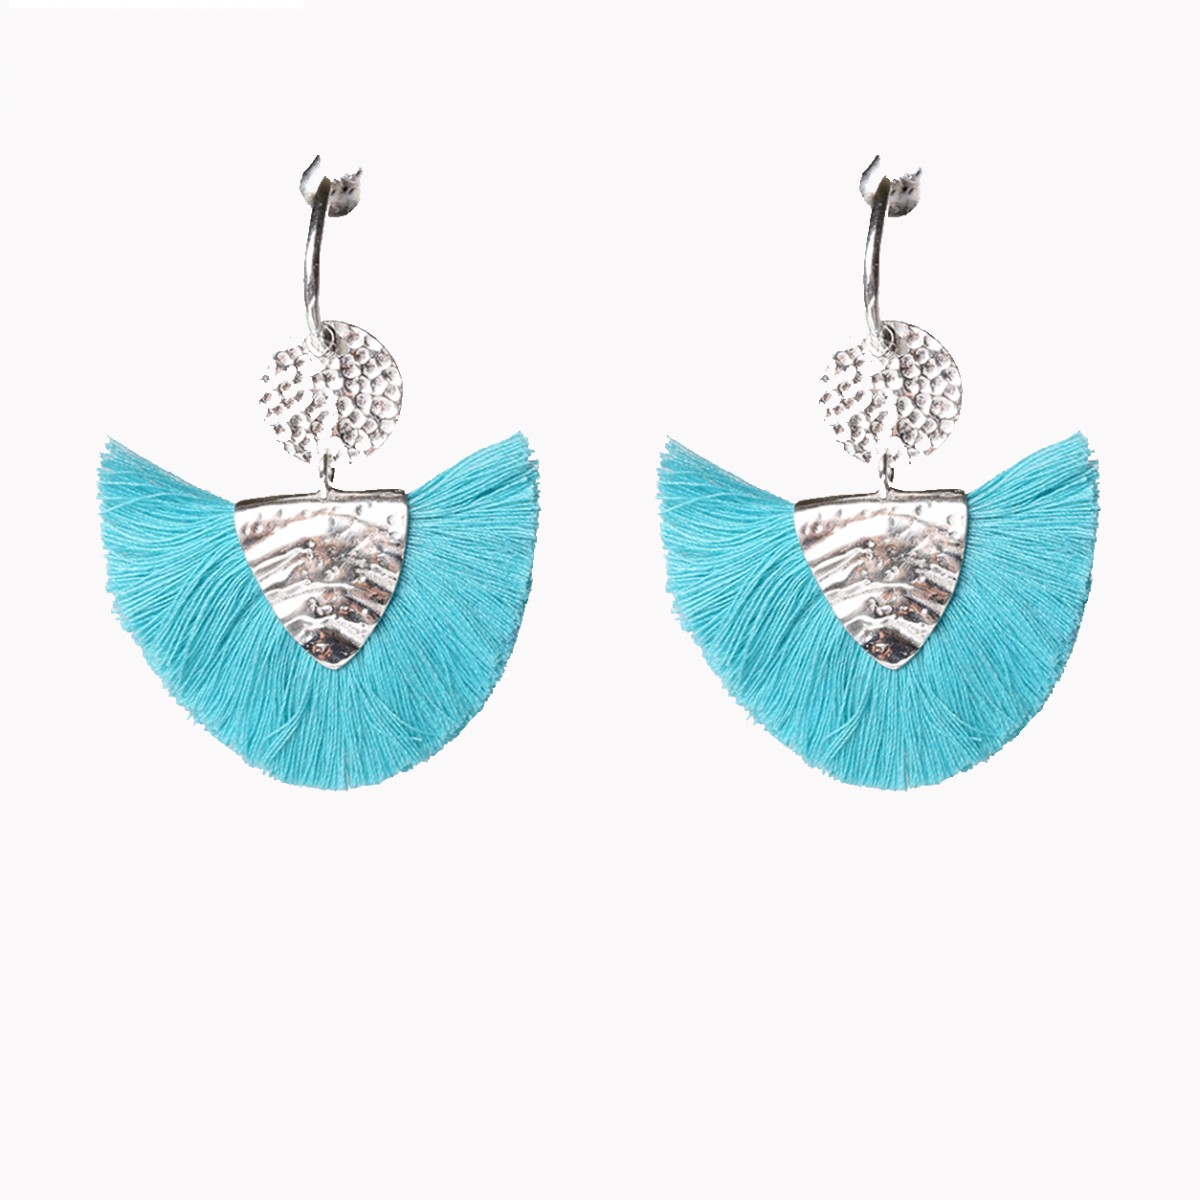 Fashion Tassel Silver Earrings - Turquoise